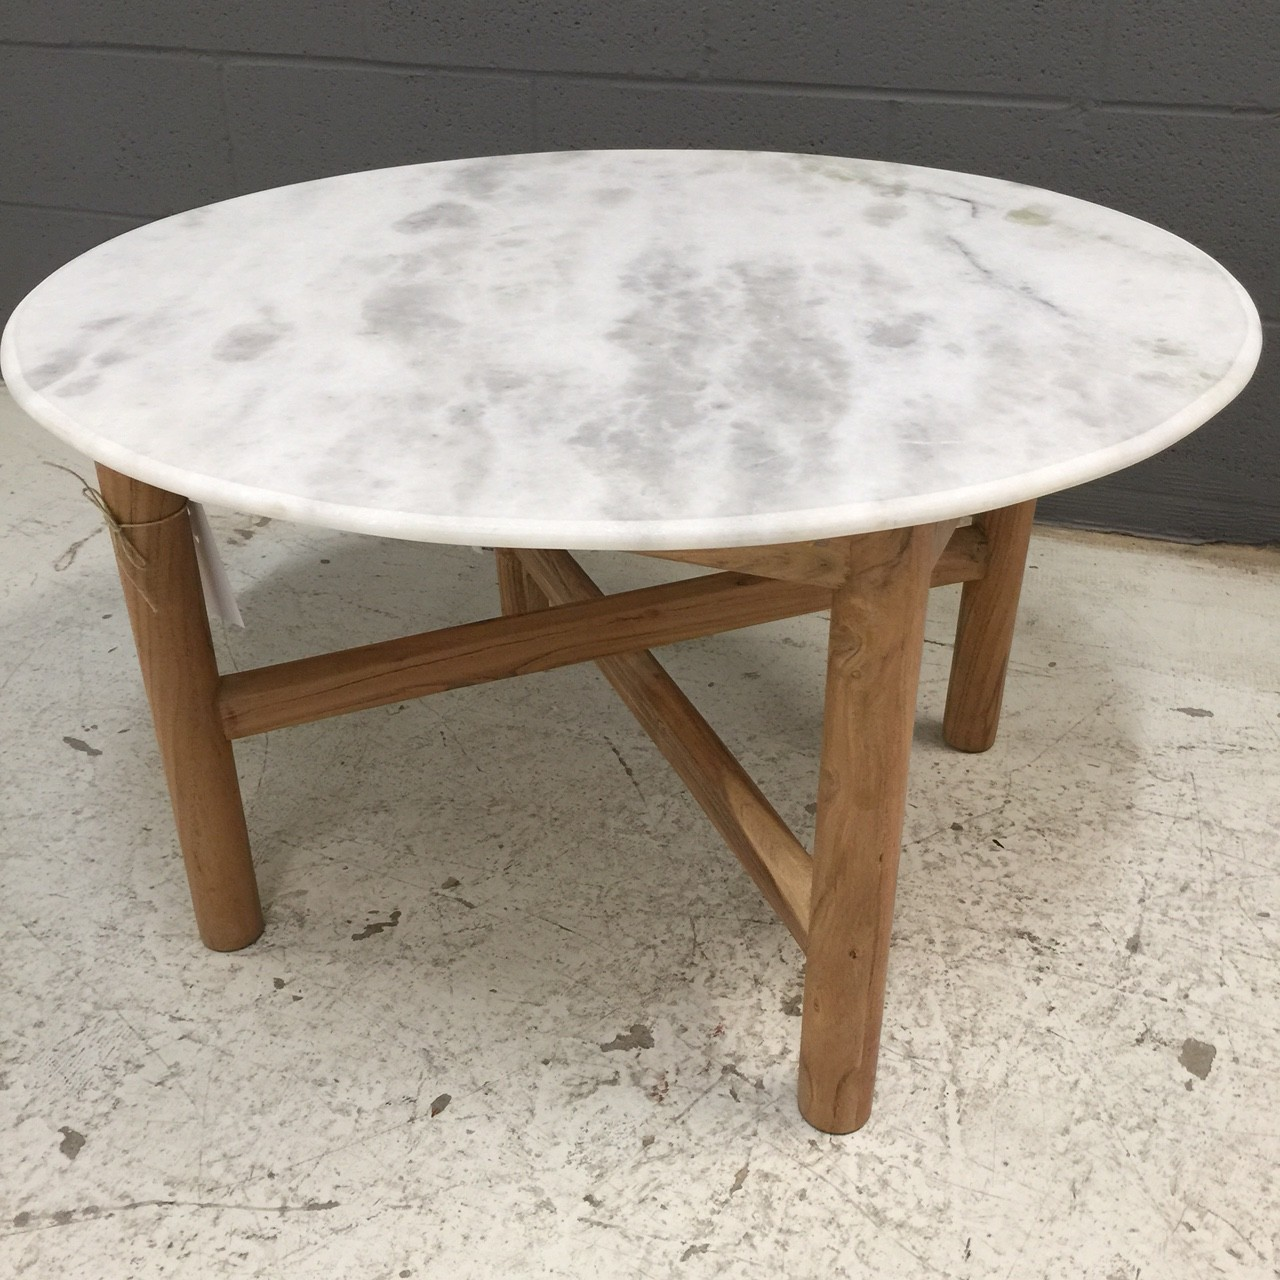 Klein Marble Coffee Table: Round Marble Coffee Table